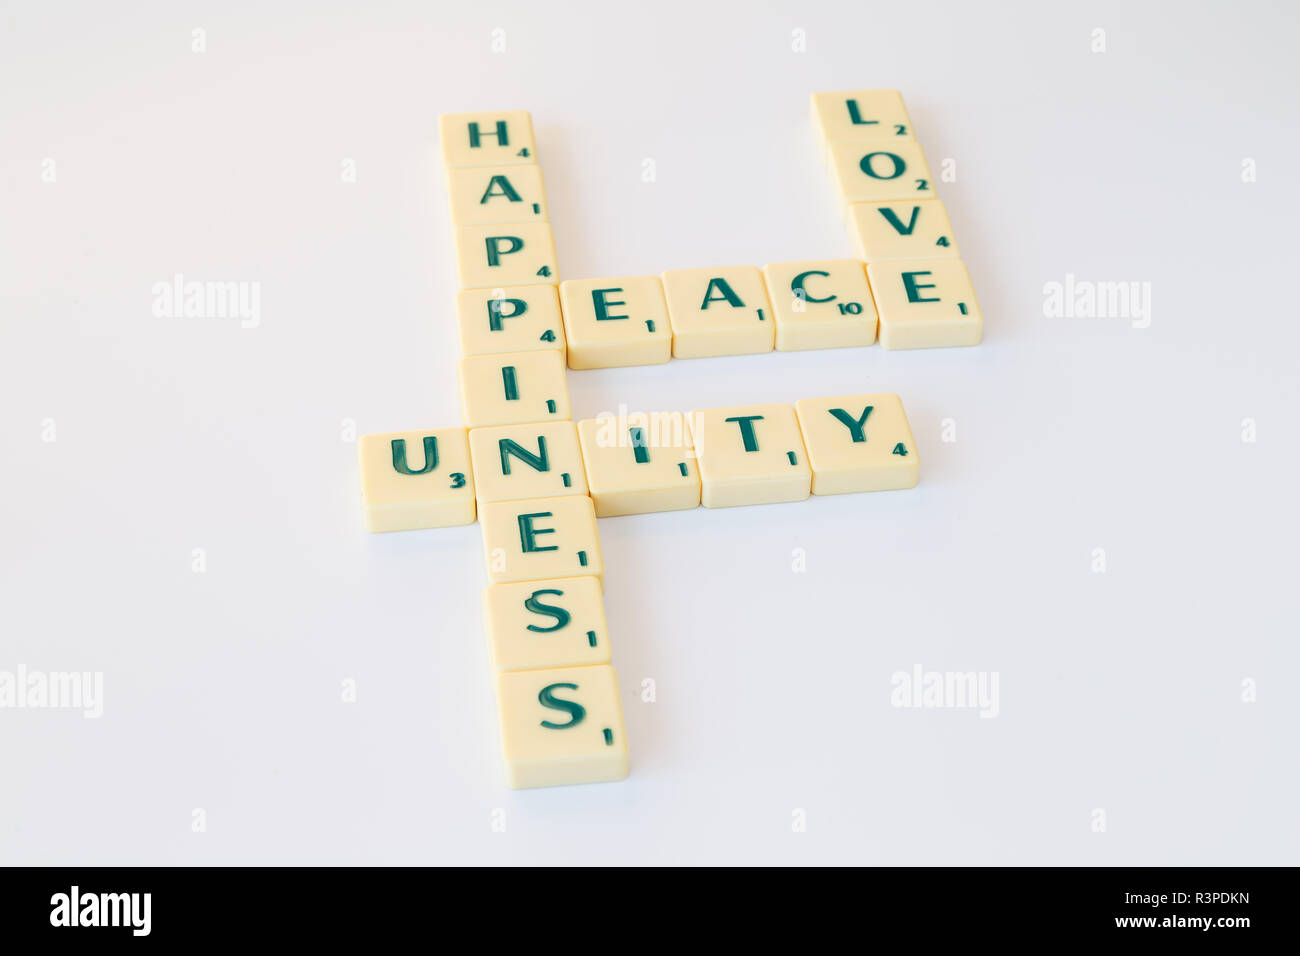 Scrabble game letter tiles with score value forming the words Peace, Love, Unity and Happiness on white background. - Stock Image